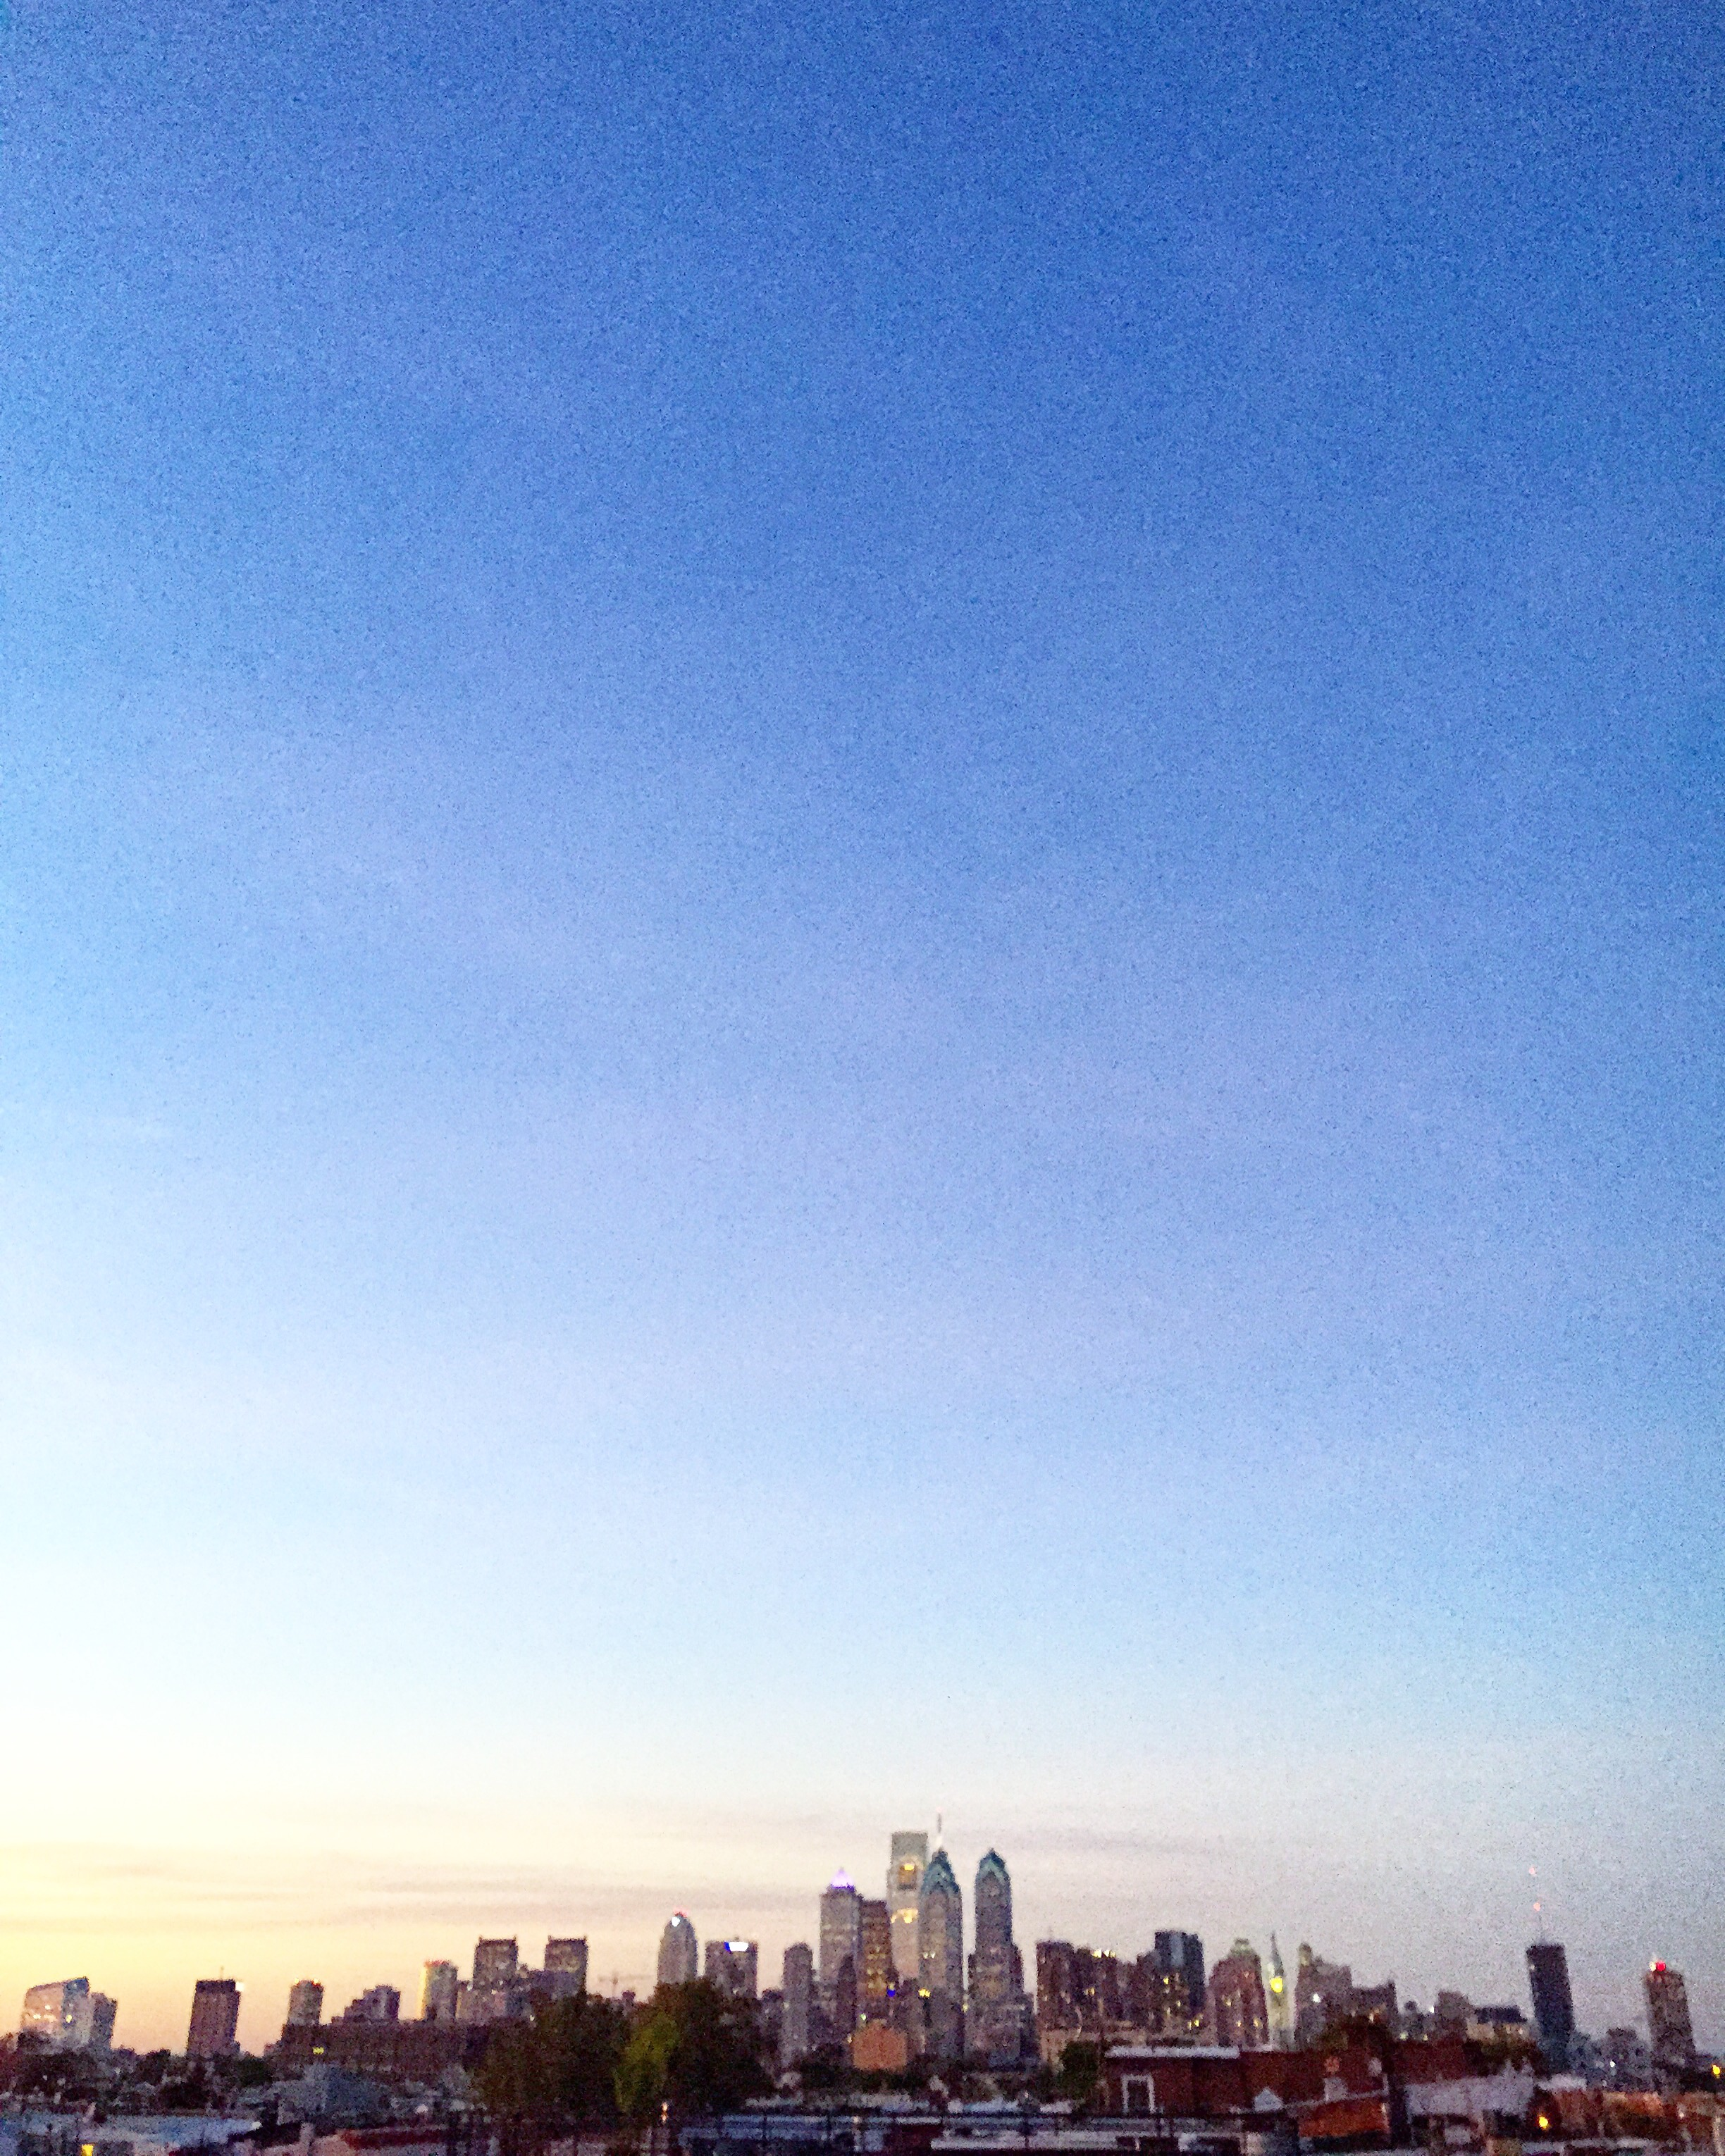 Skyline// Philadelphia, Pennsylvania